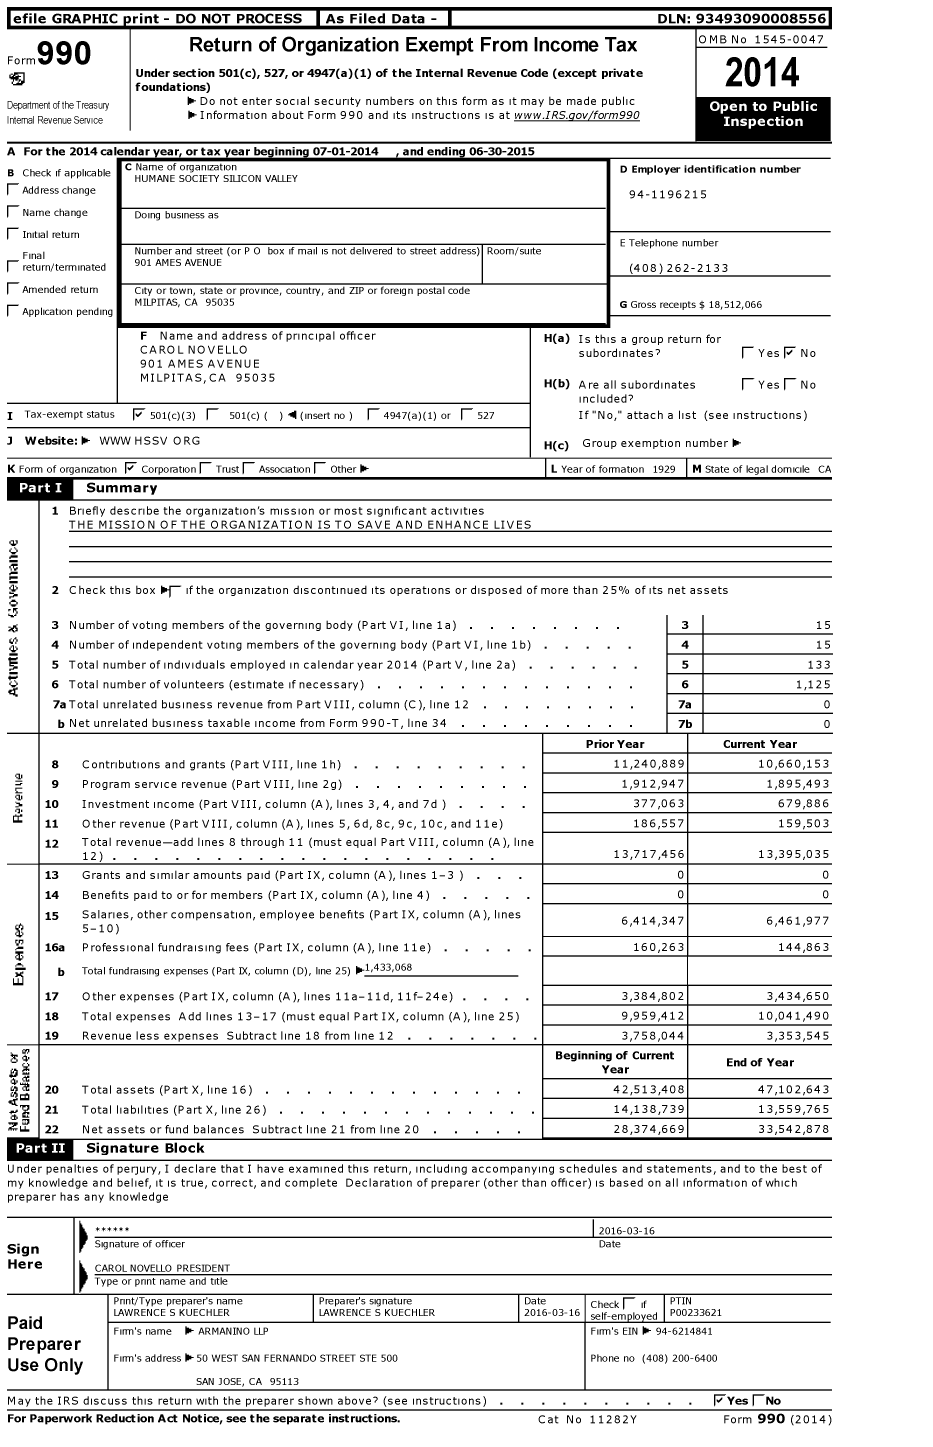 Image of first page of 2014 Form 990 for Humane Society Silicon Valley